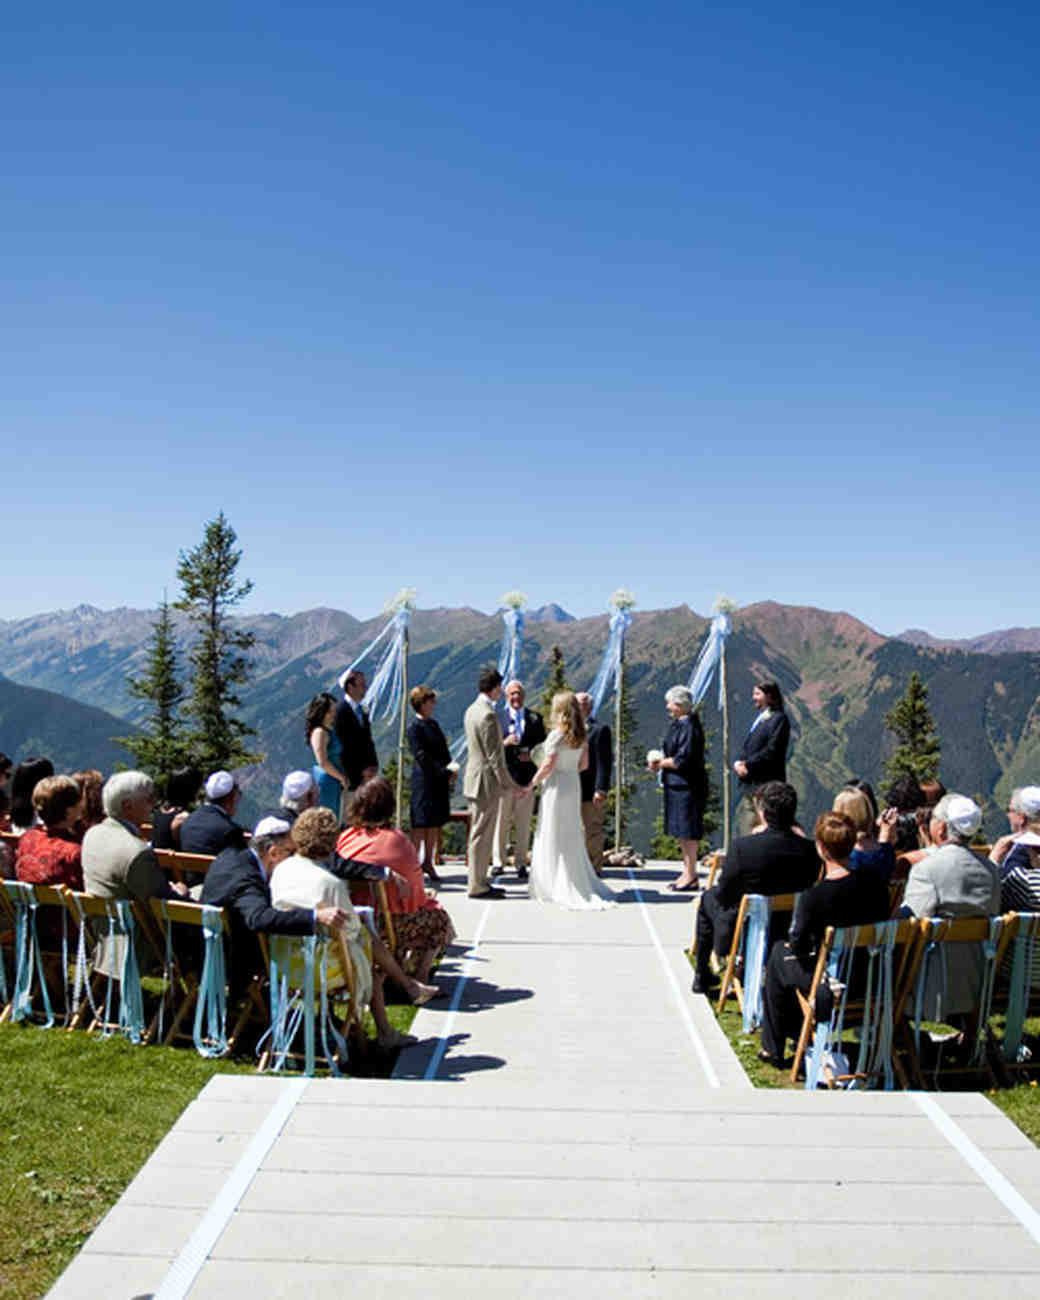 The Little Nell Wedding Deck Aspen Colorado